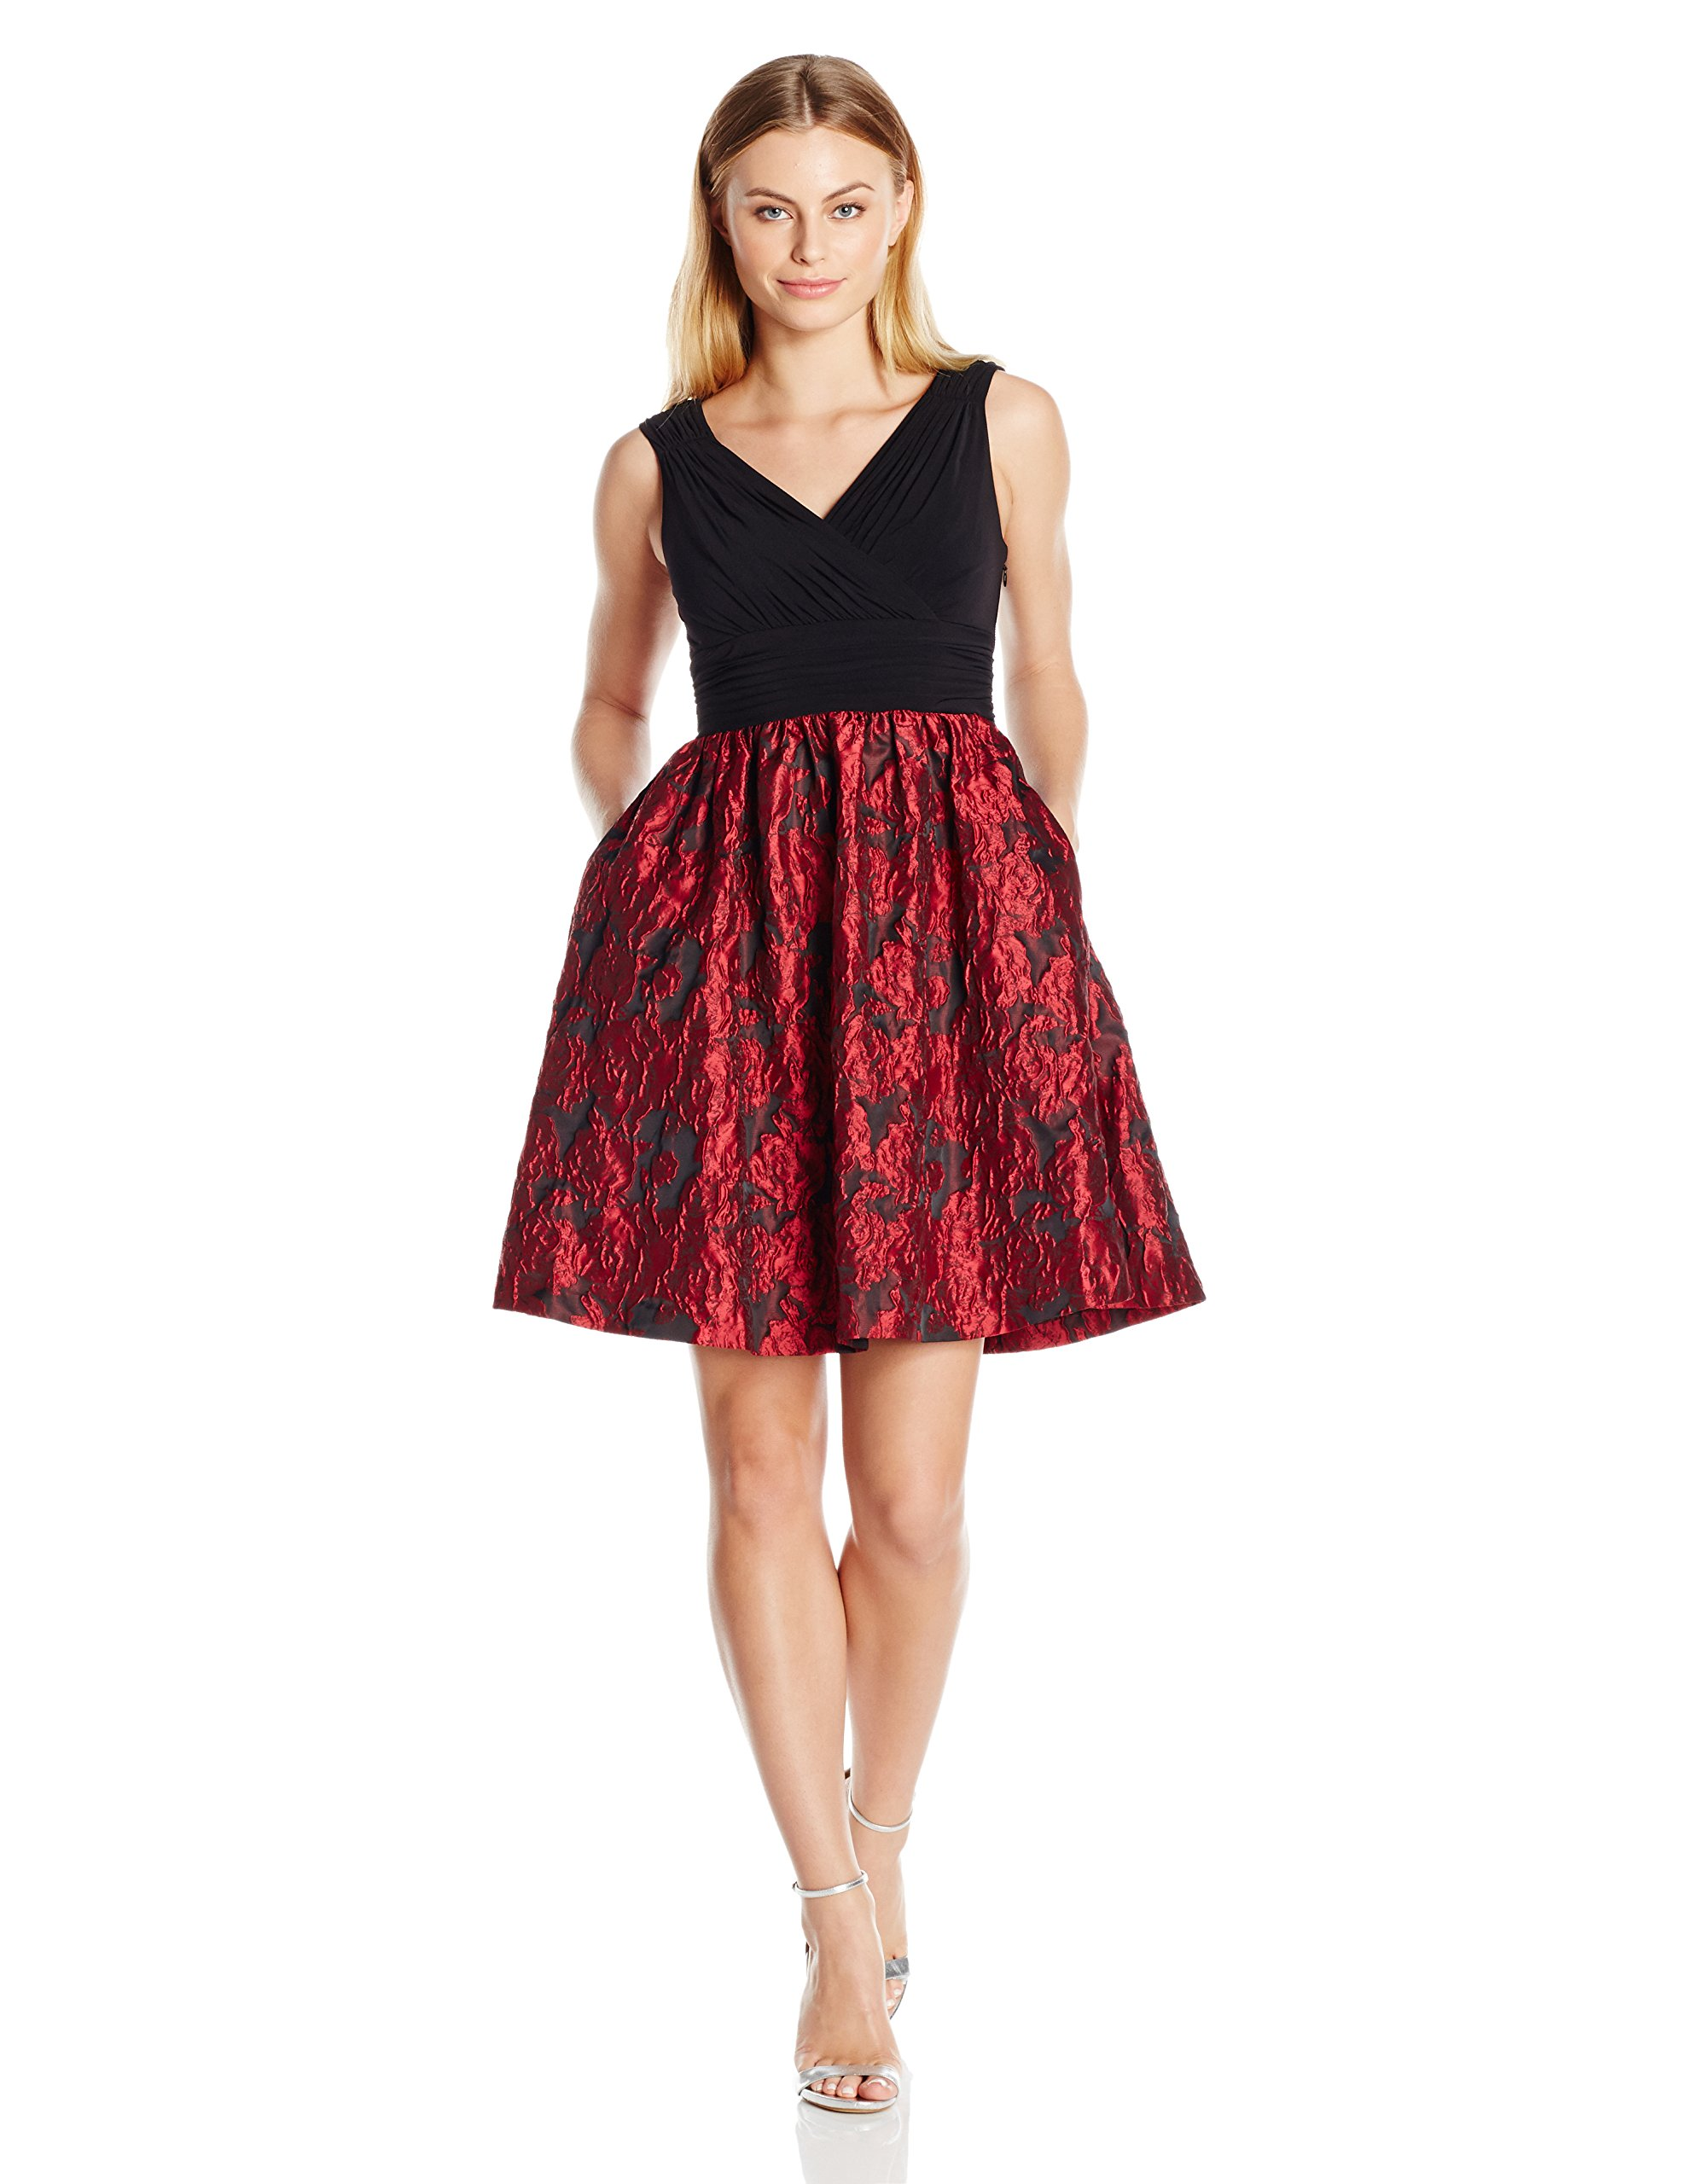 Adrianna Papell Women's Petite Portrait Bodice Fit and Flare, Red/Black, 12P